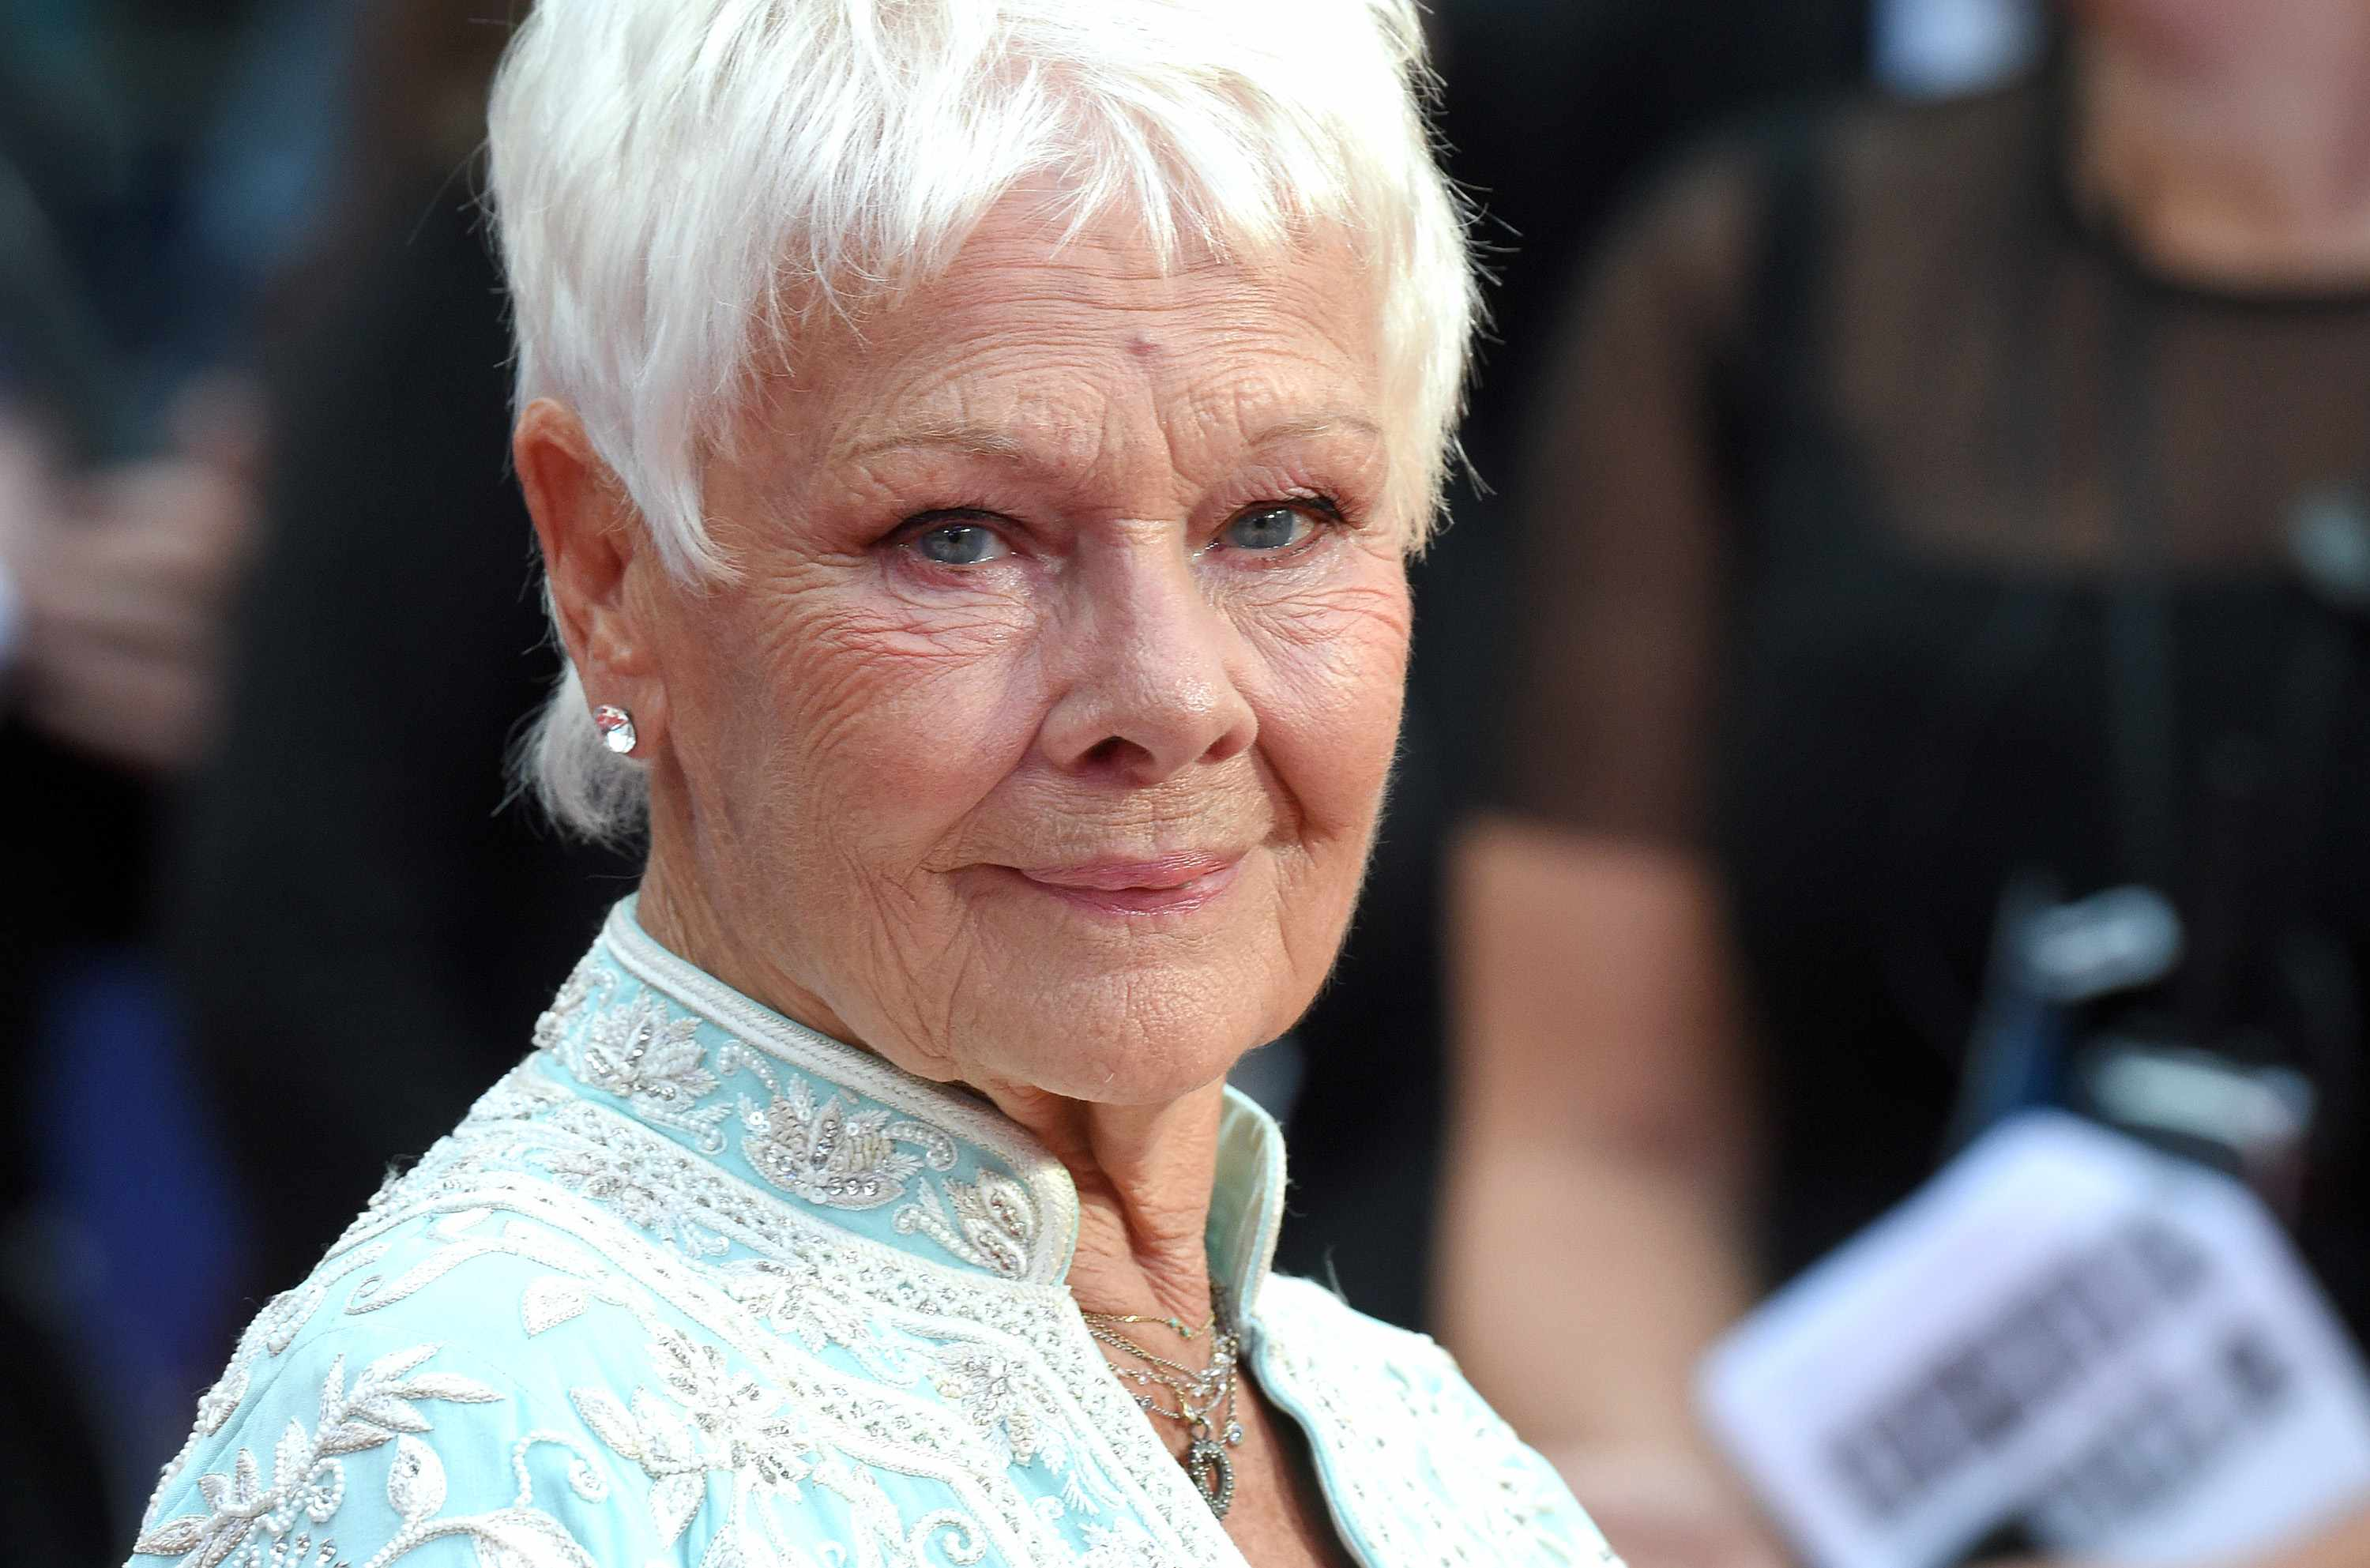 """LONDON, ENGLAND - SEPTEMBER 05:  Judi Dench attends the """"Victoria & Abdul"""" UK premiere held at Odeon Leicester Square on September 5, 2017 in London, England.  (Photo by Anthony Harvey/WireImage)"""